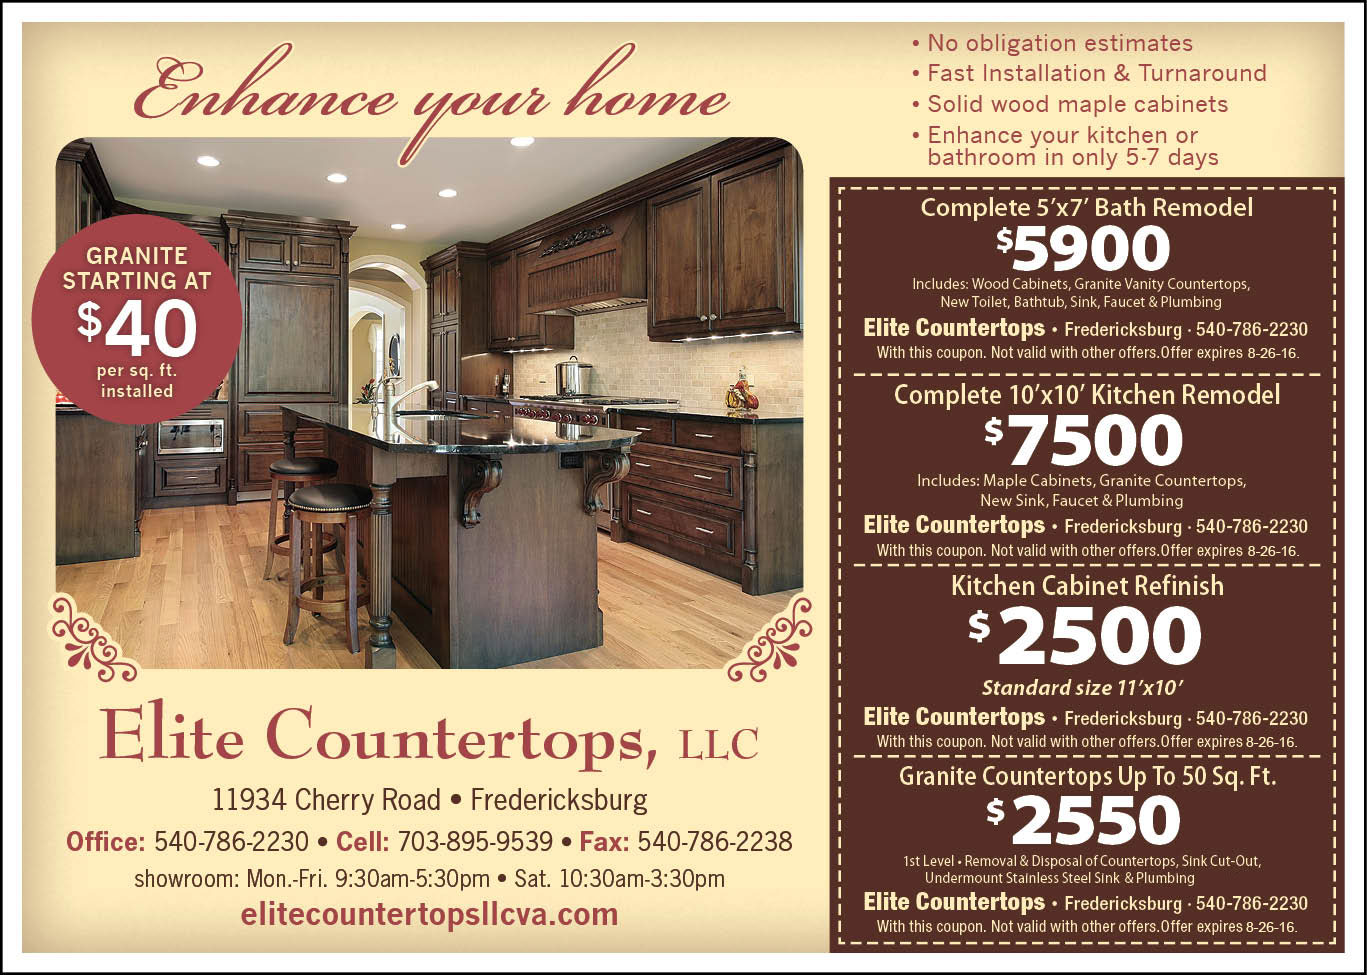 Elite Countertops Valuable Coupon